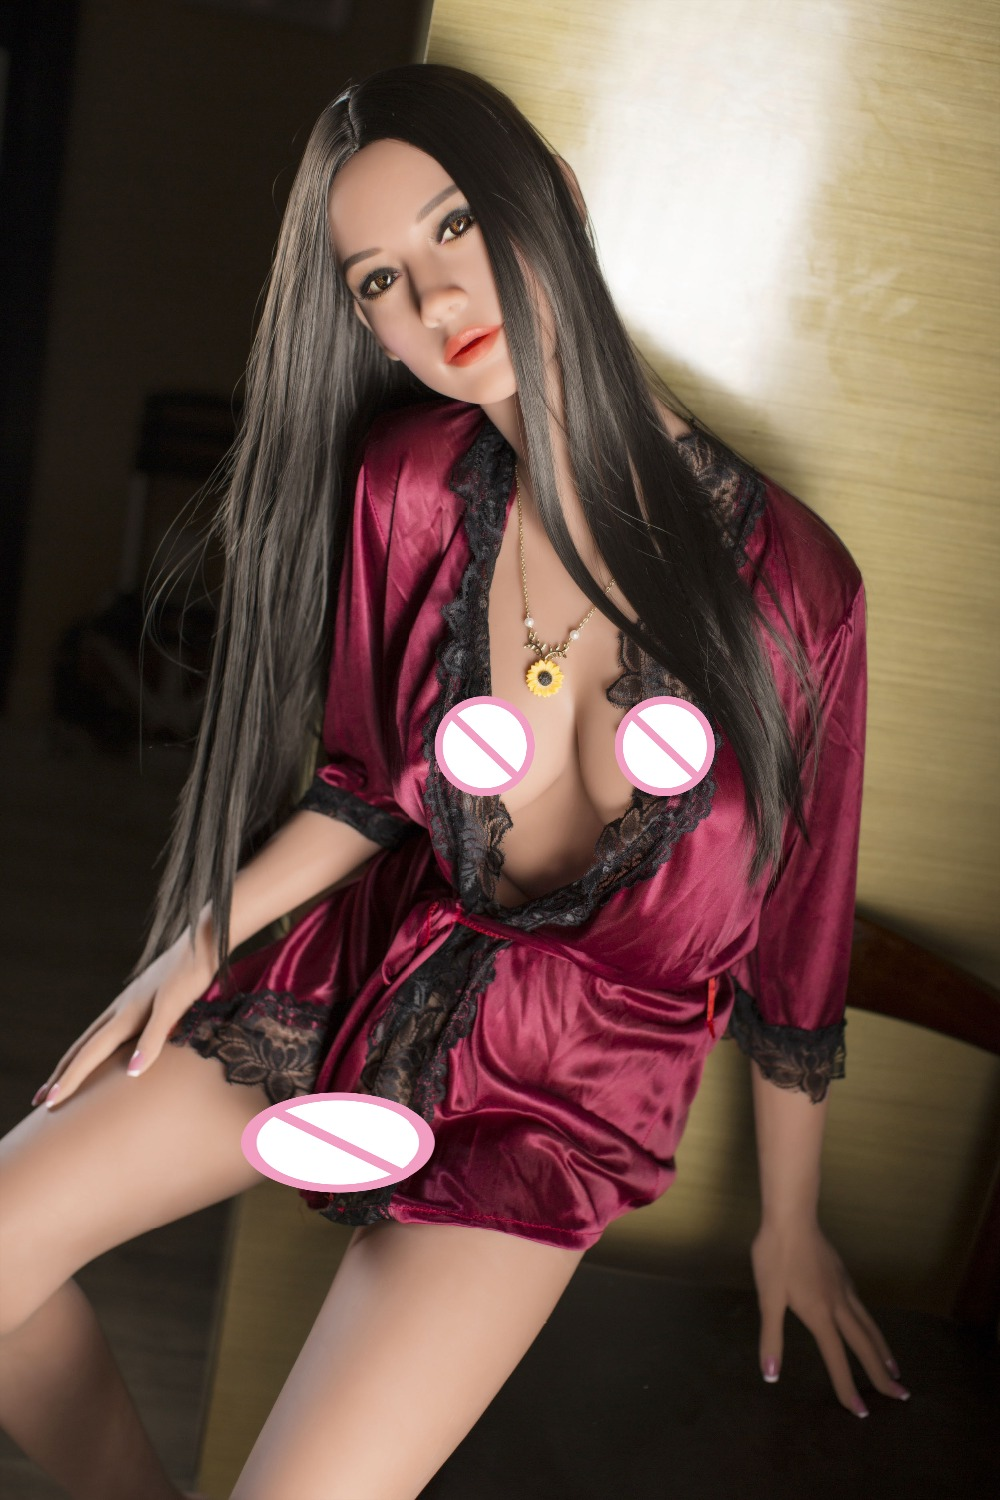 NEW 163cm <font><b>Sex</b></font> <font><b>Doll</b></font> Big Breast American European Face Sexy Lifelike Silicone <font><b>Sex</b></font> <font><b>Dolls</b></font> <font><b>Shemale</b></font> with Penis Dildo Men Women image